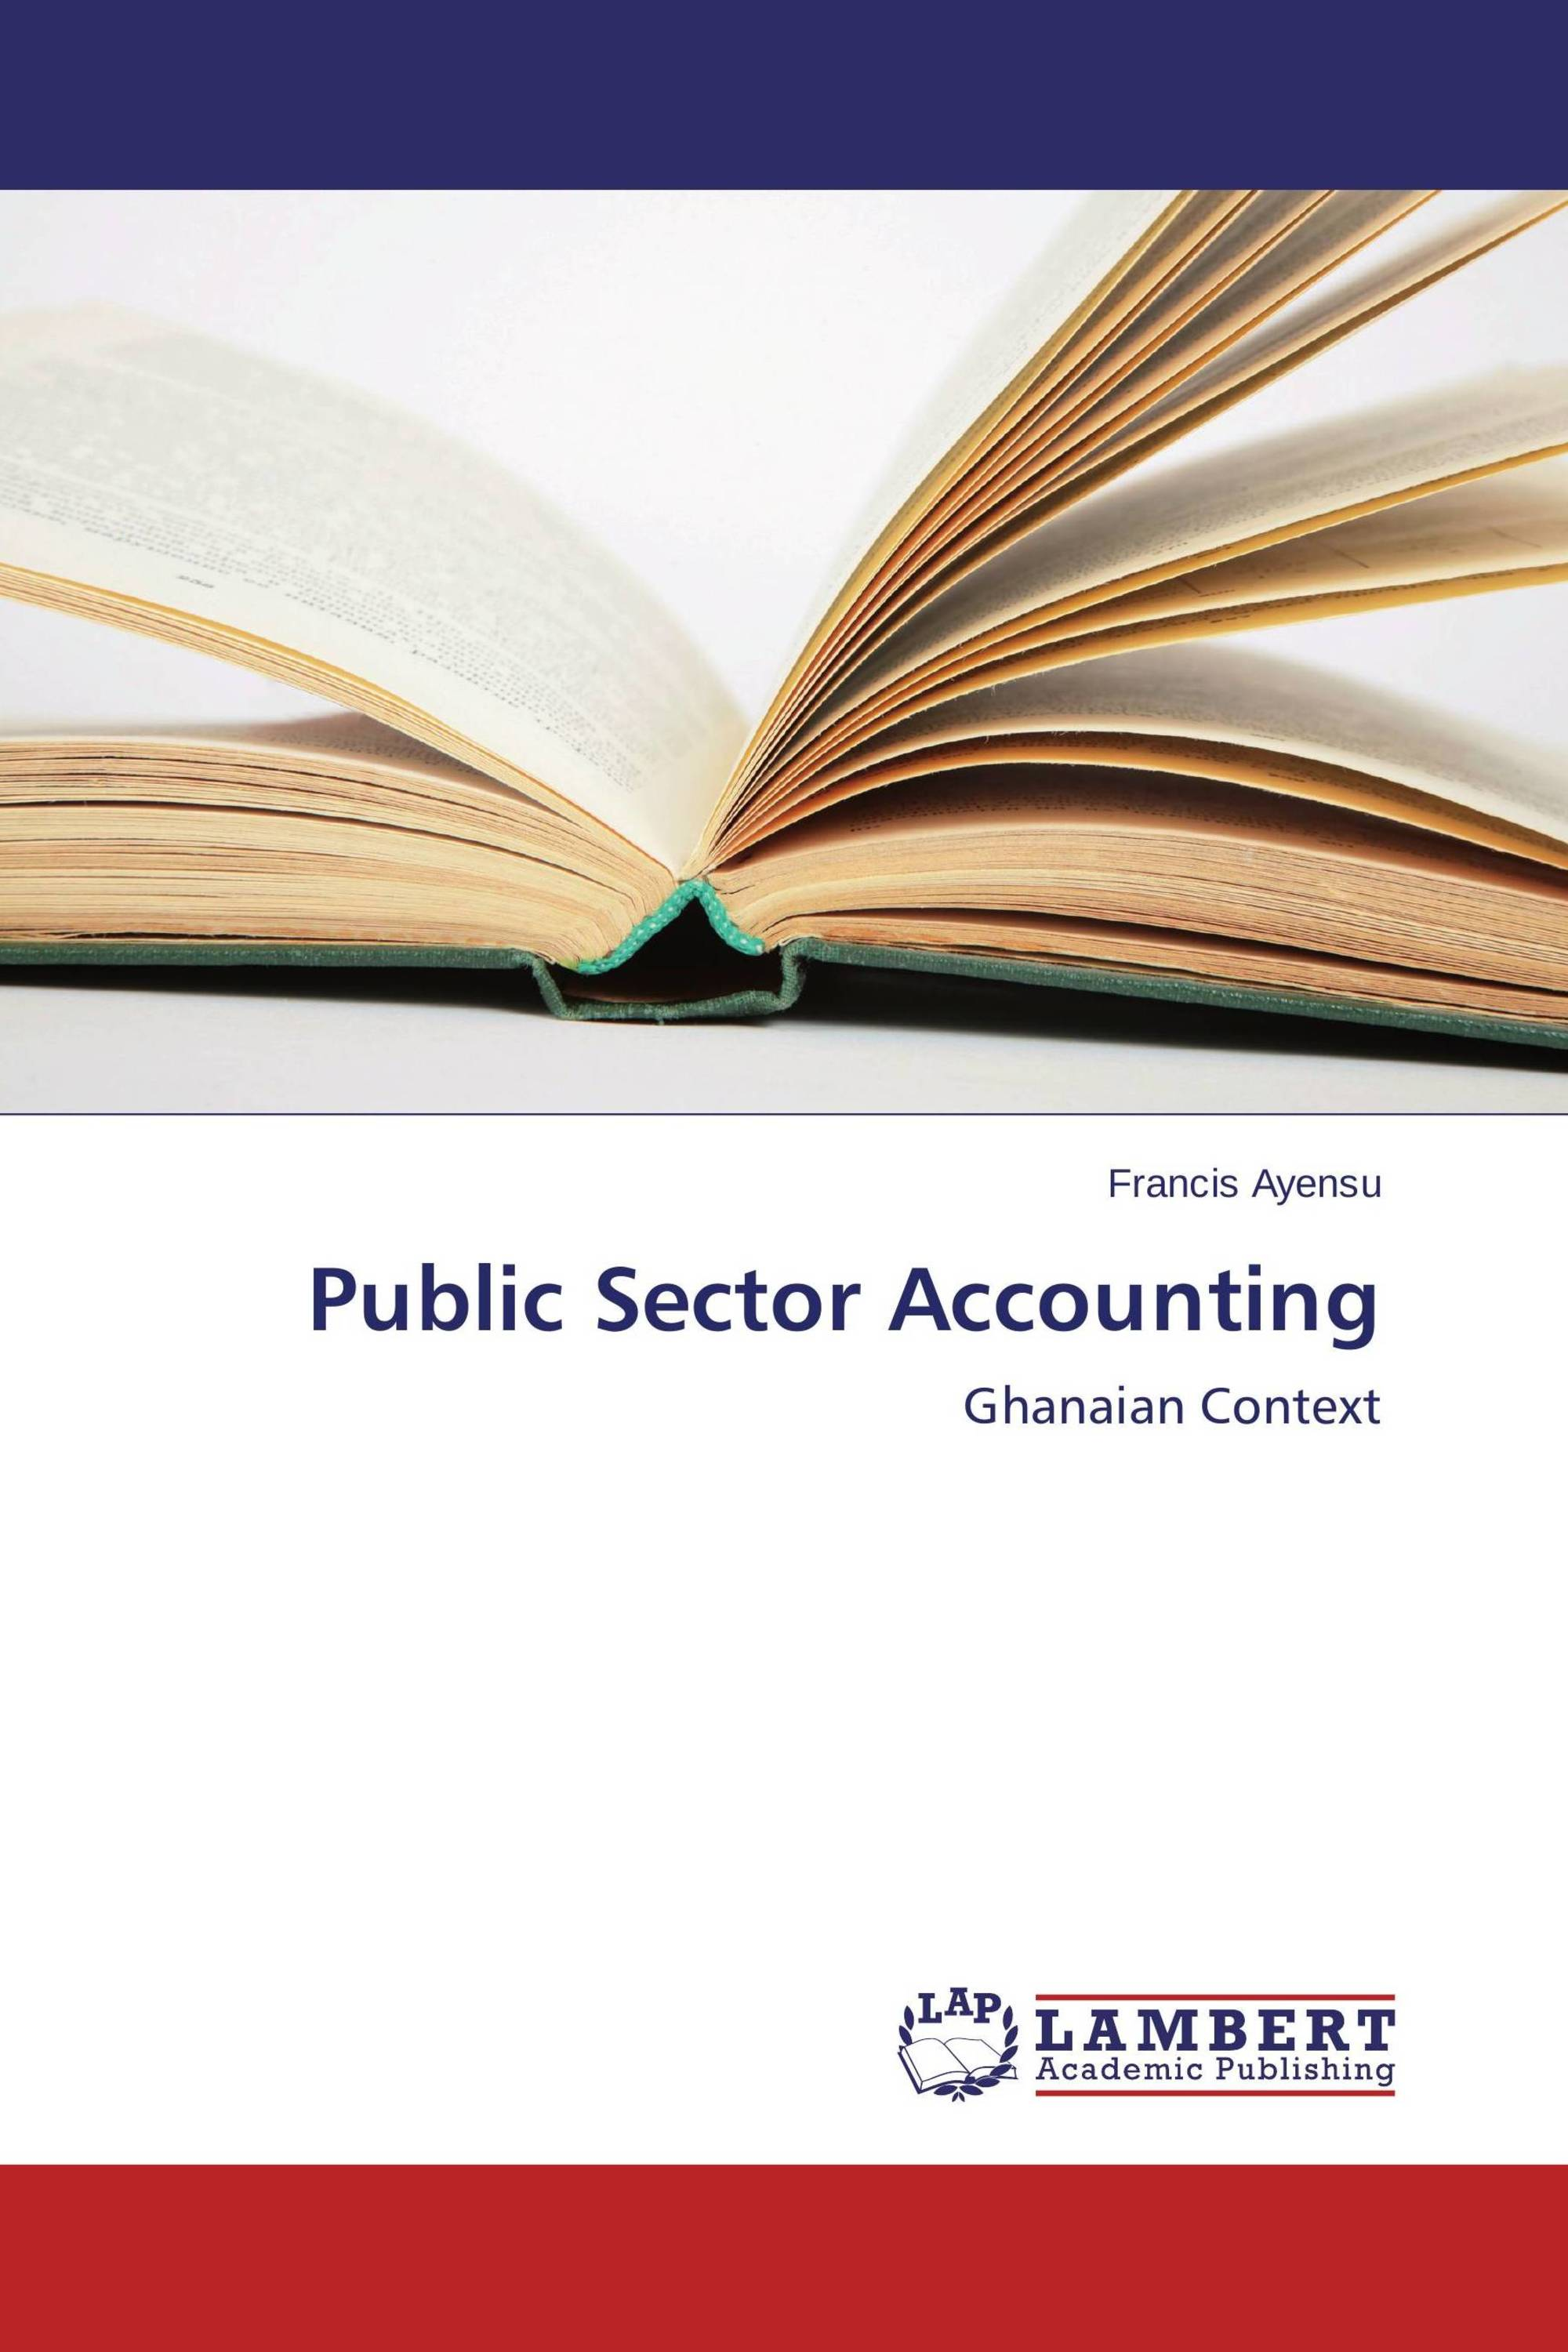 public sector accounting Issued may 2000 exposure draft 9 response due date november 30, 2000 financial reporting under the cash basis of accounting proposed international public sector.